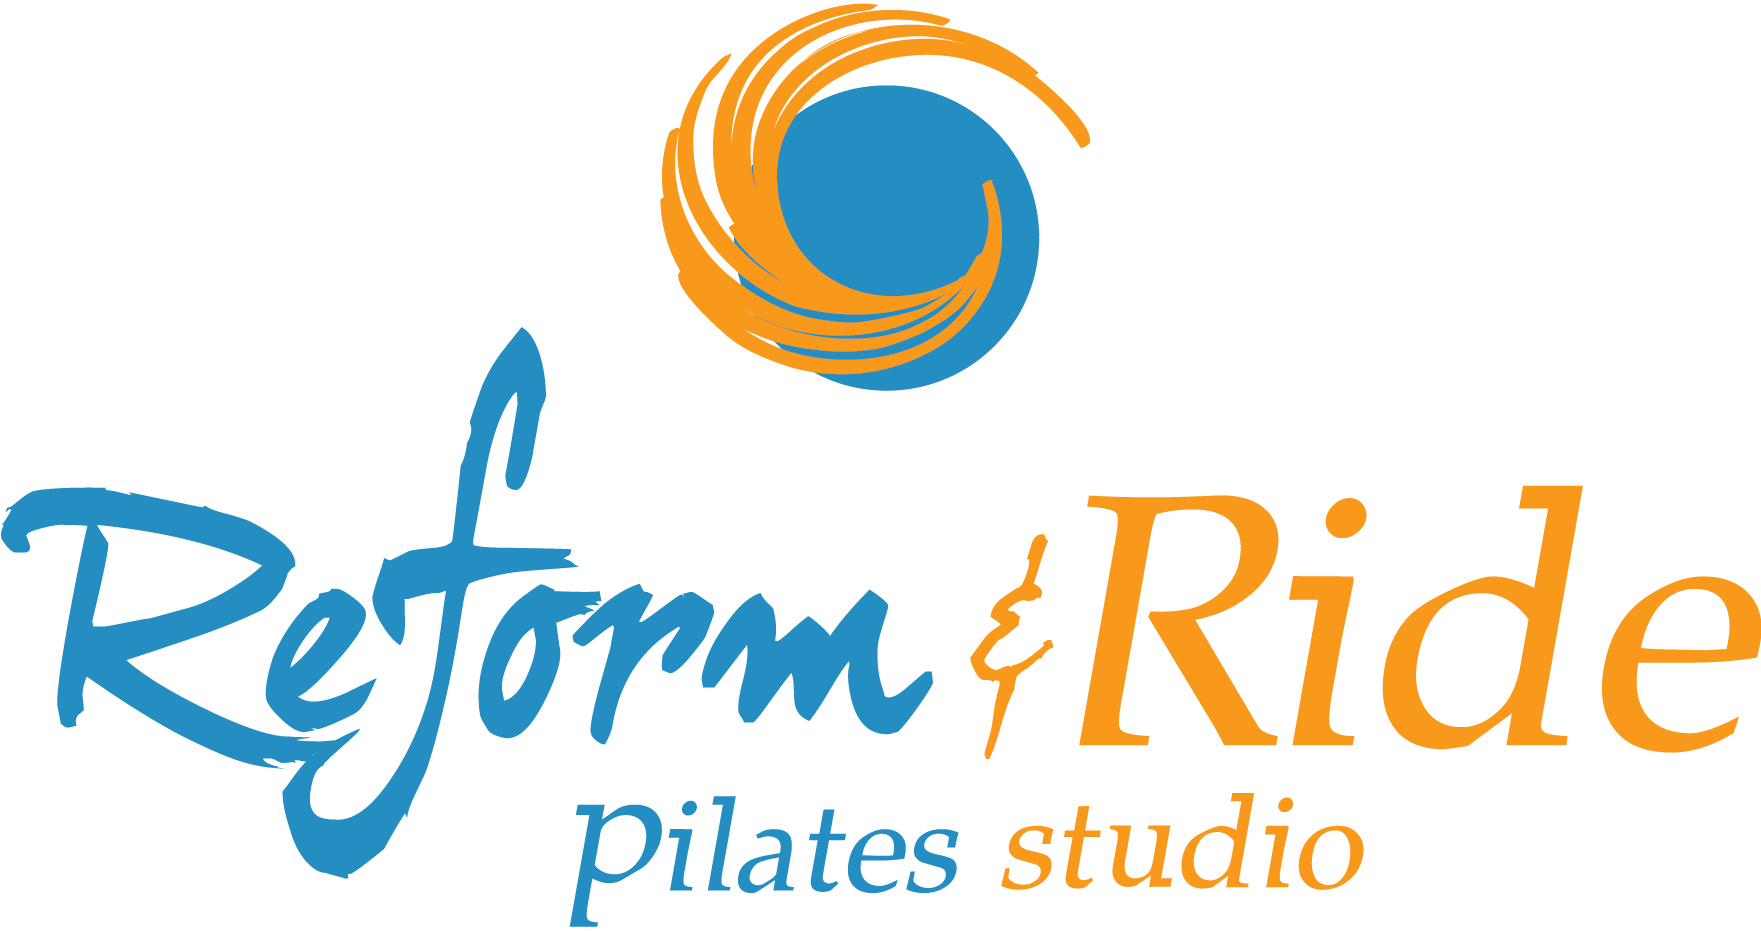 Reform and ride pilates